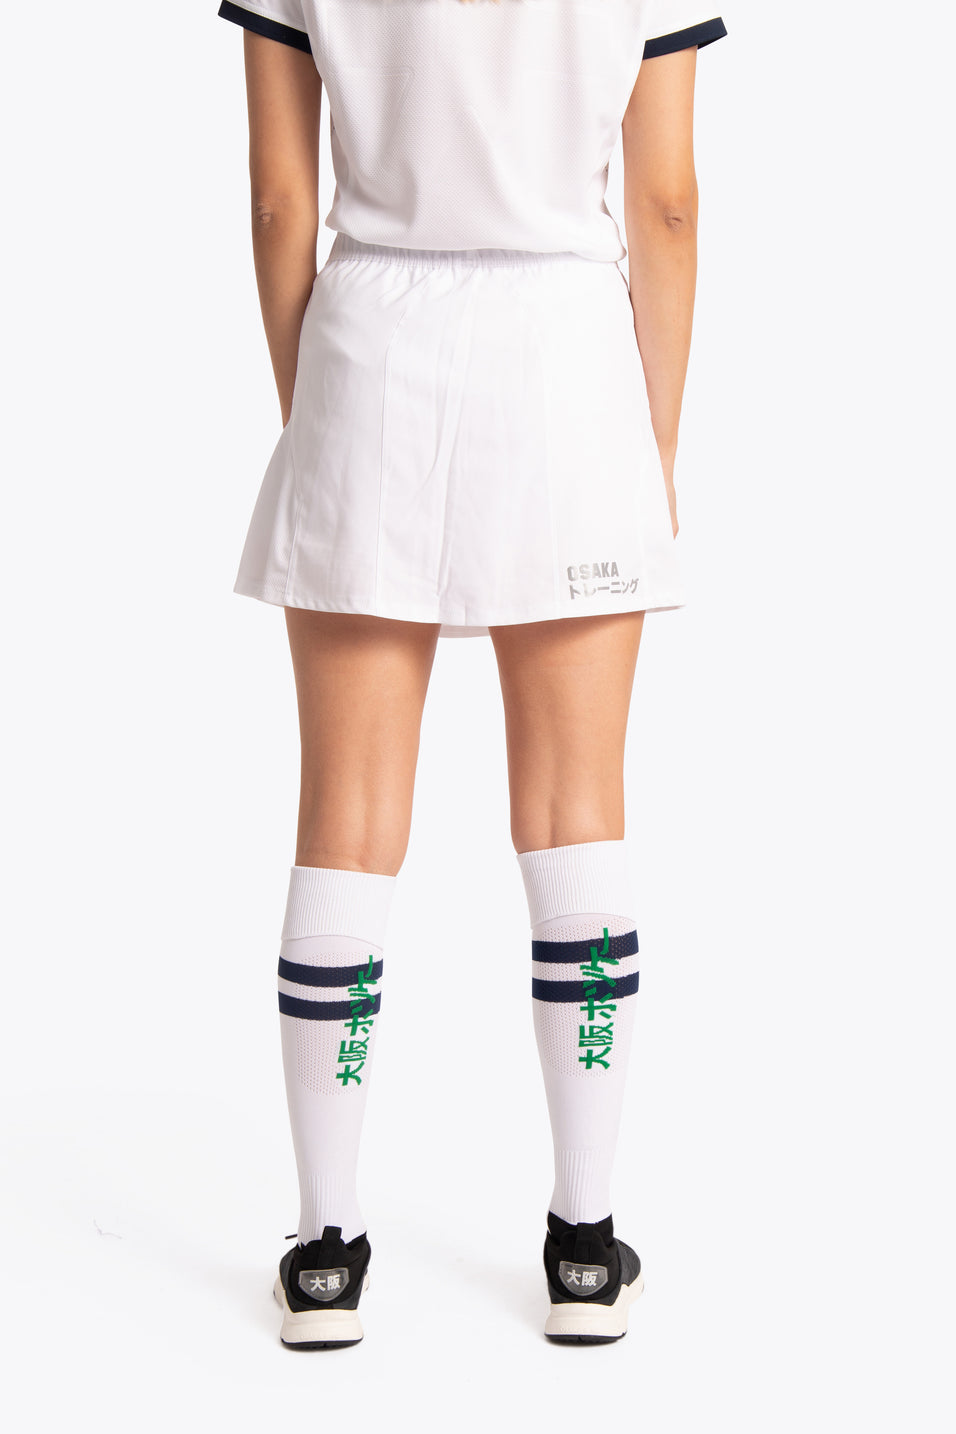 BHV Push Women Skort - White